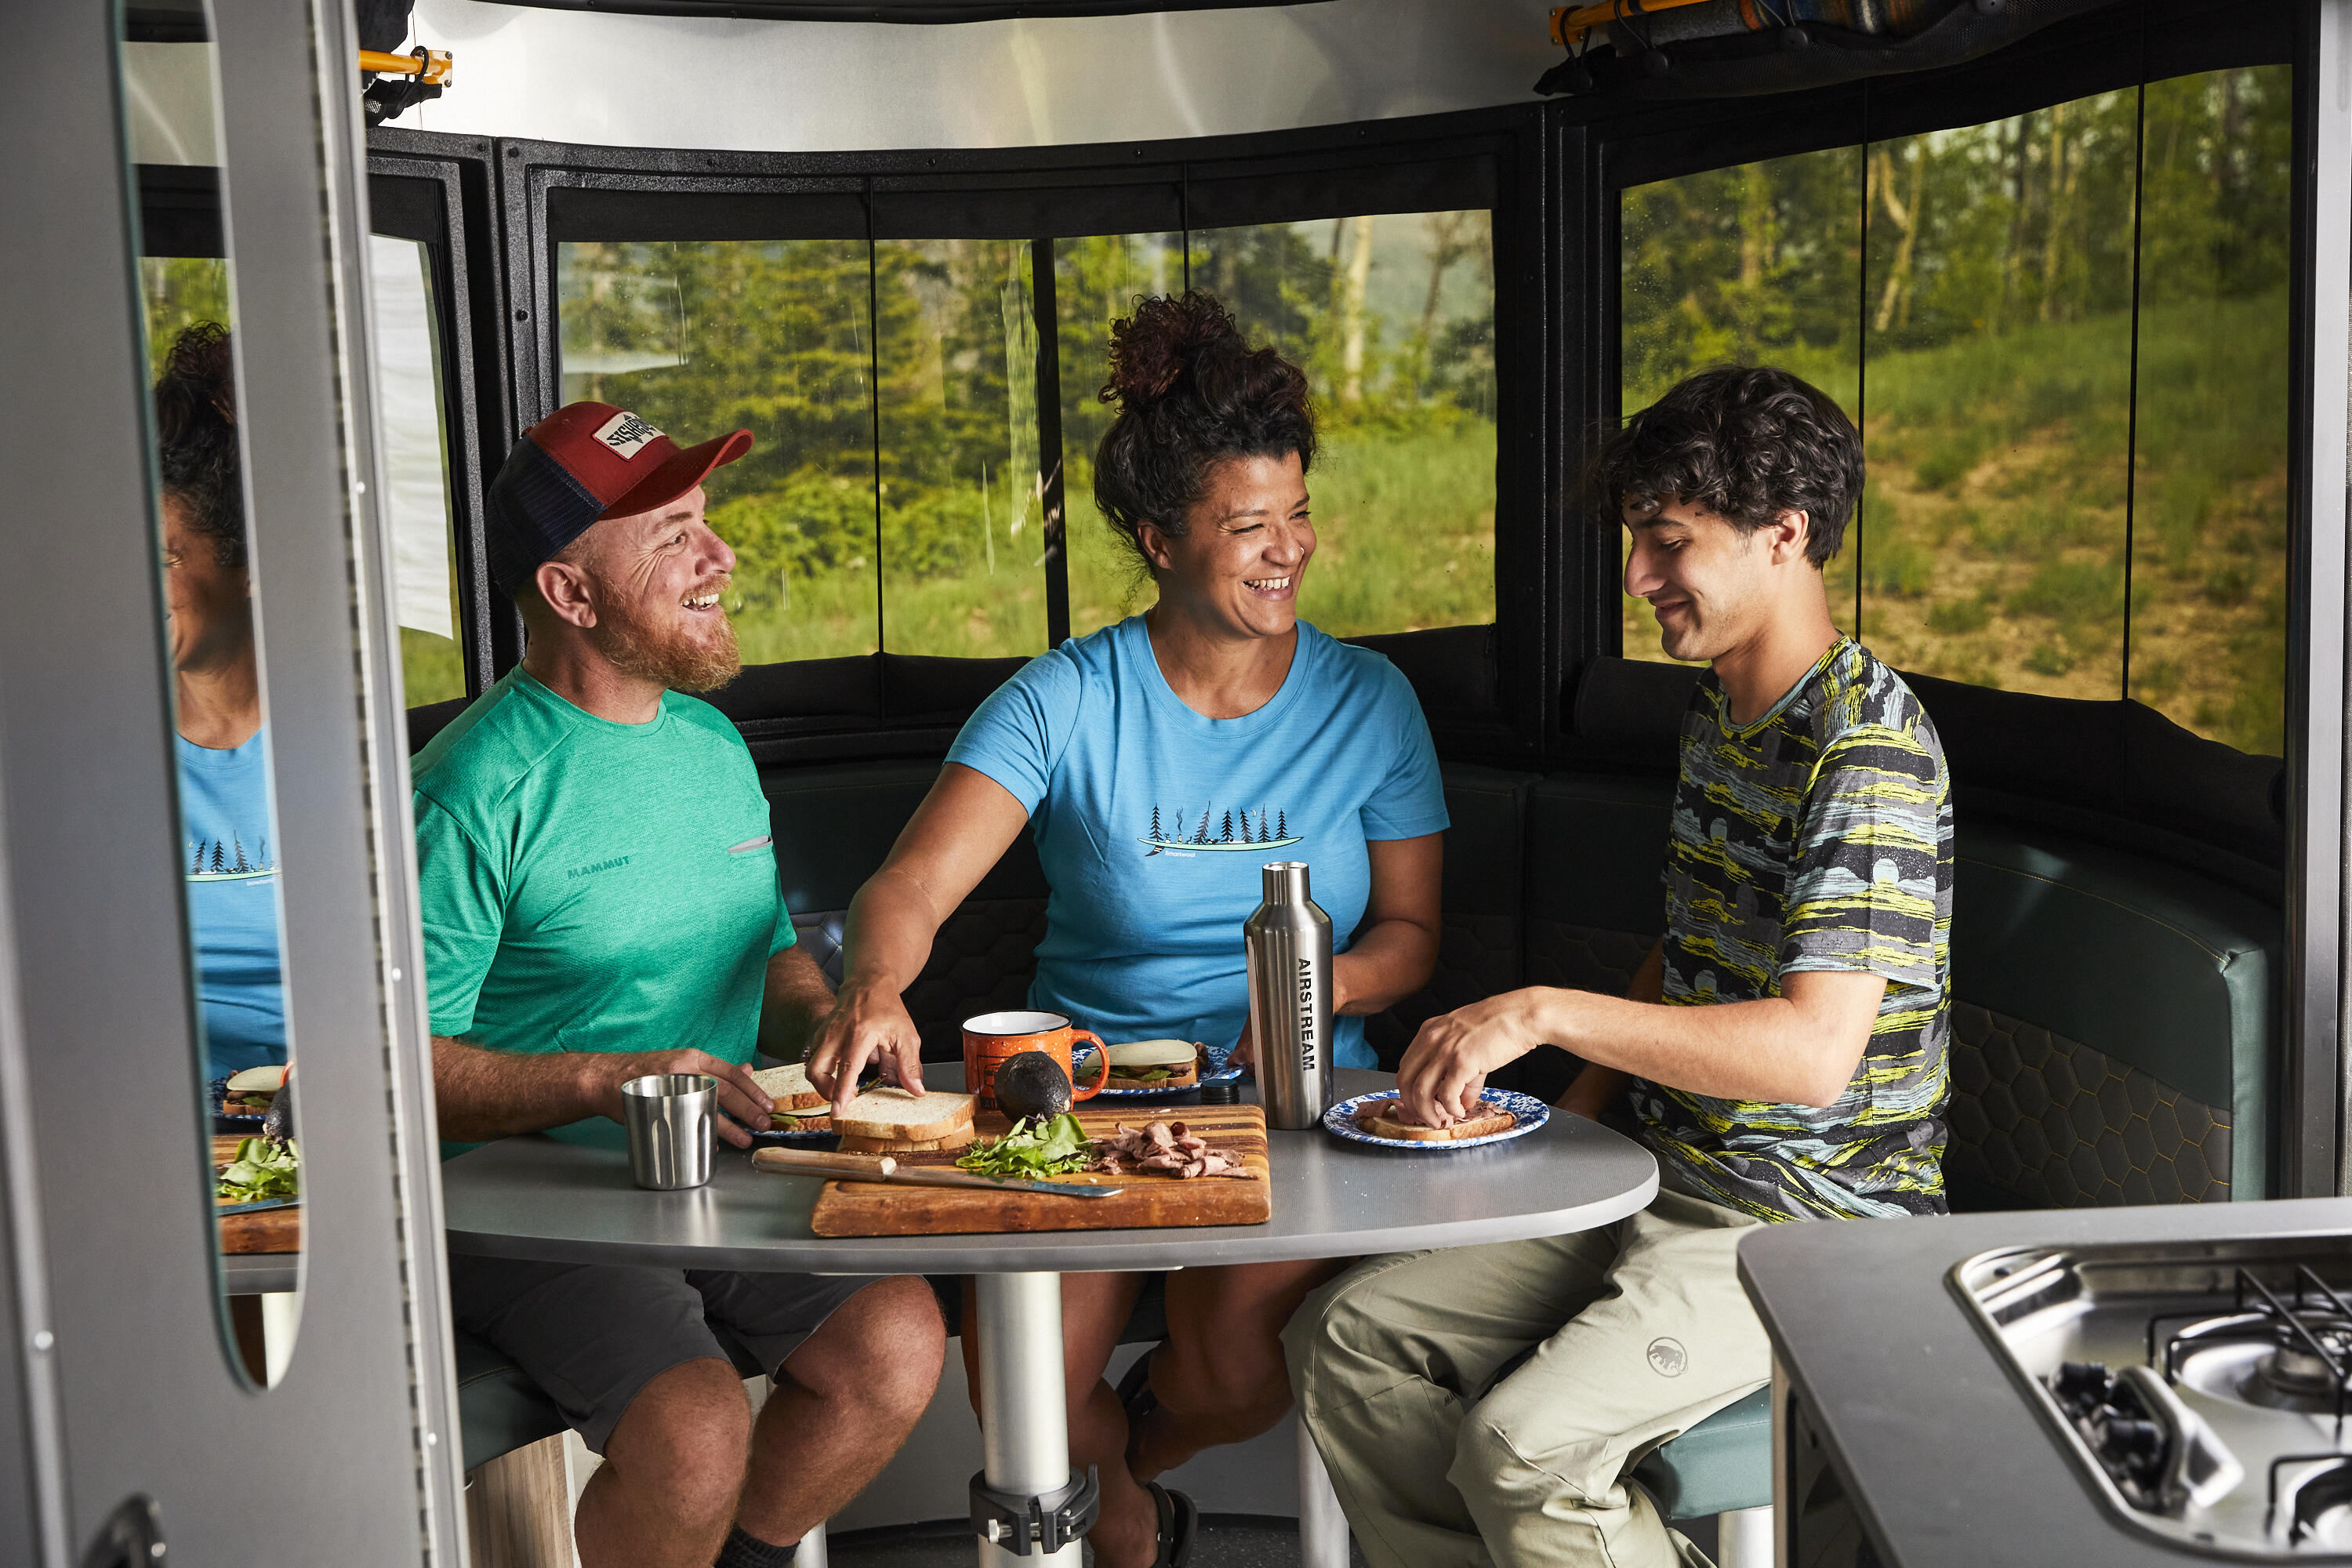 20-06-20-airstream-steamboat-dl-575